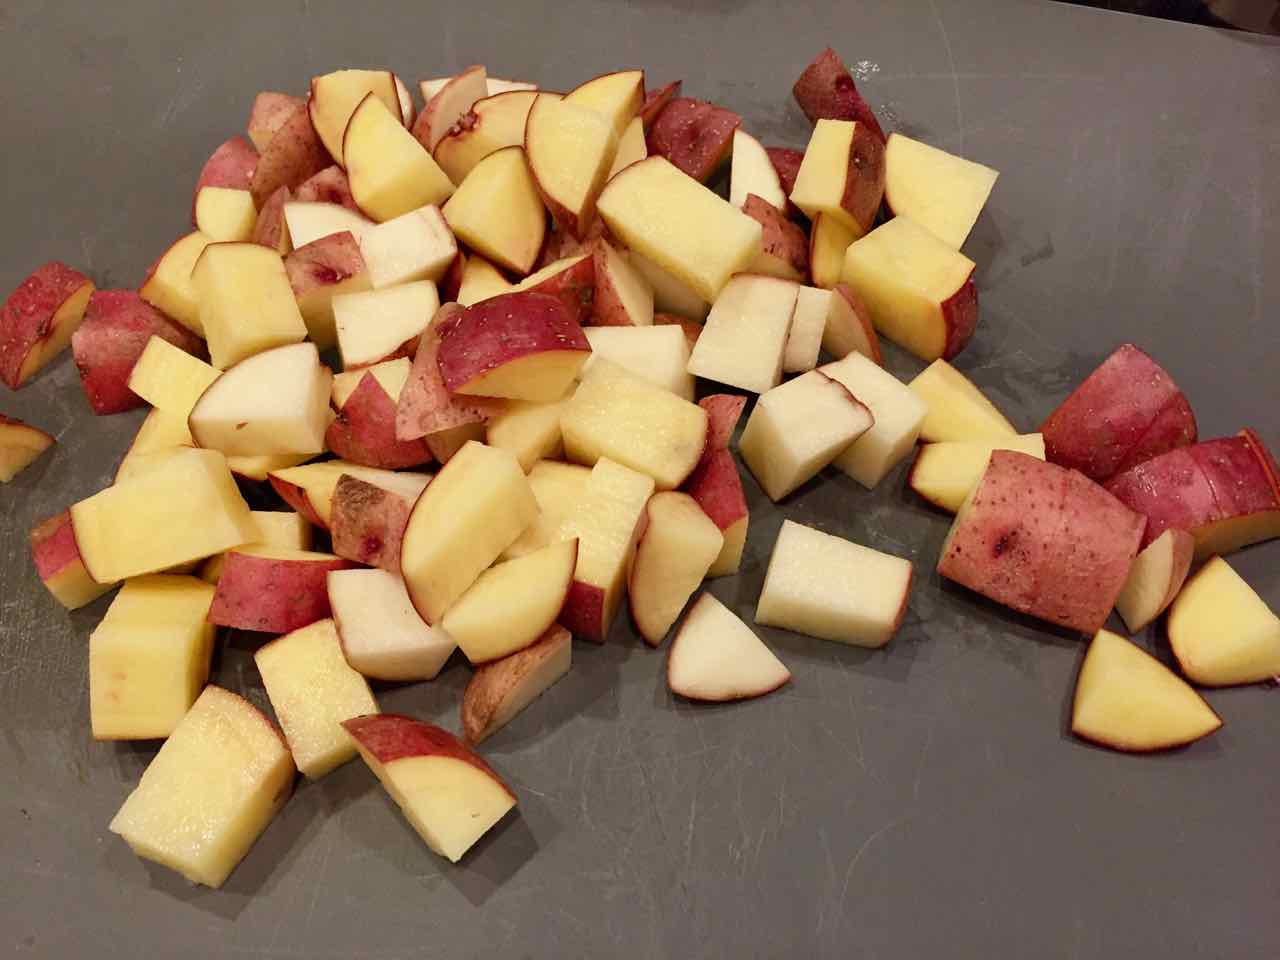 Image of chopped red potatoes on a cutting board.